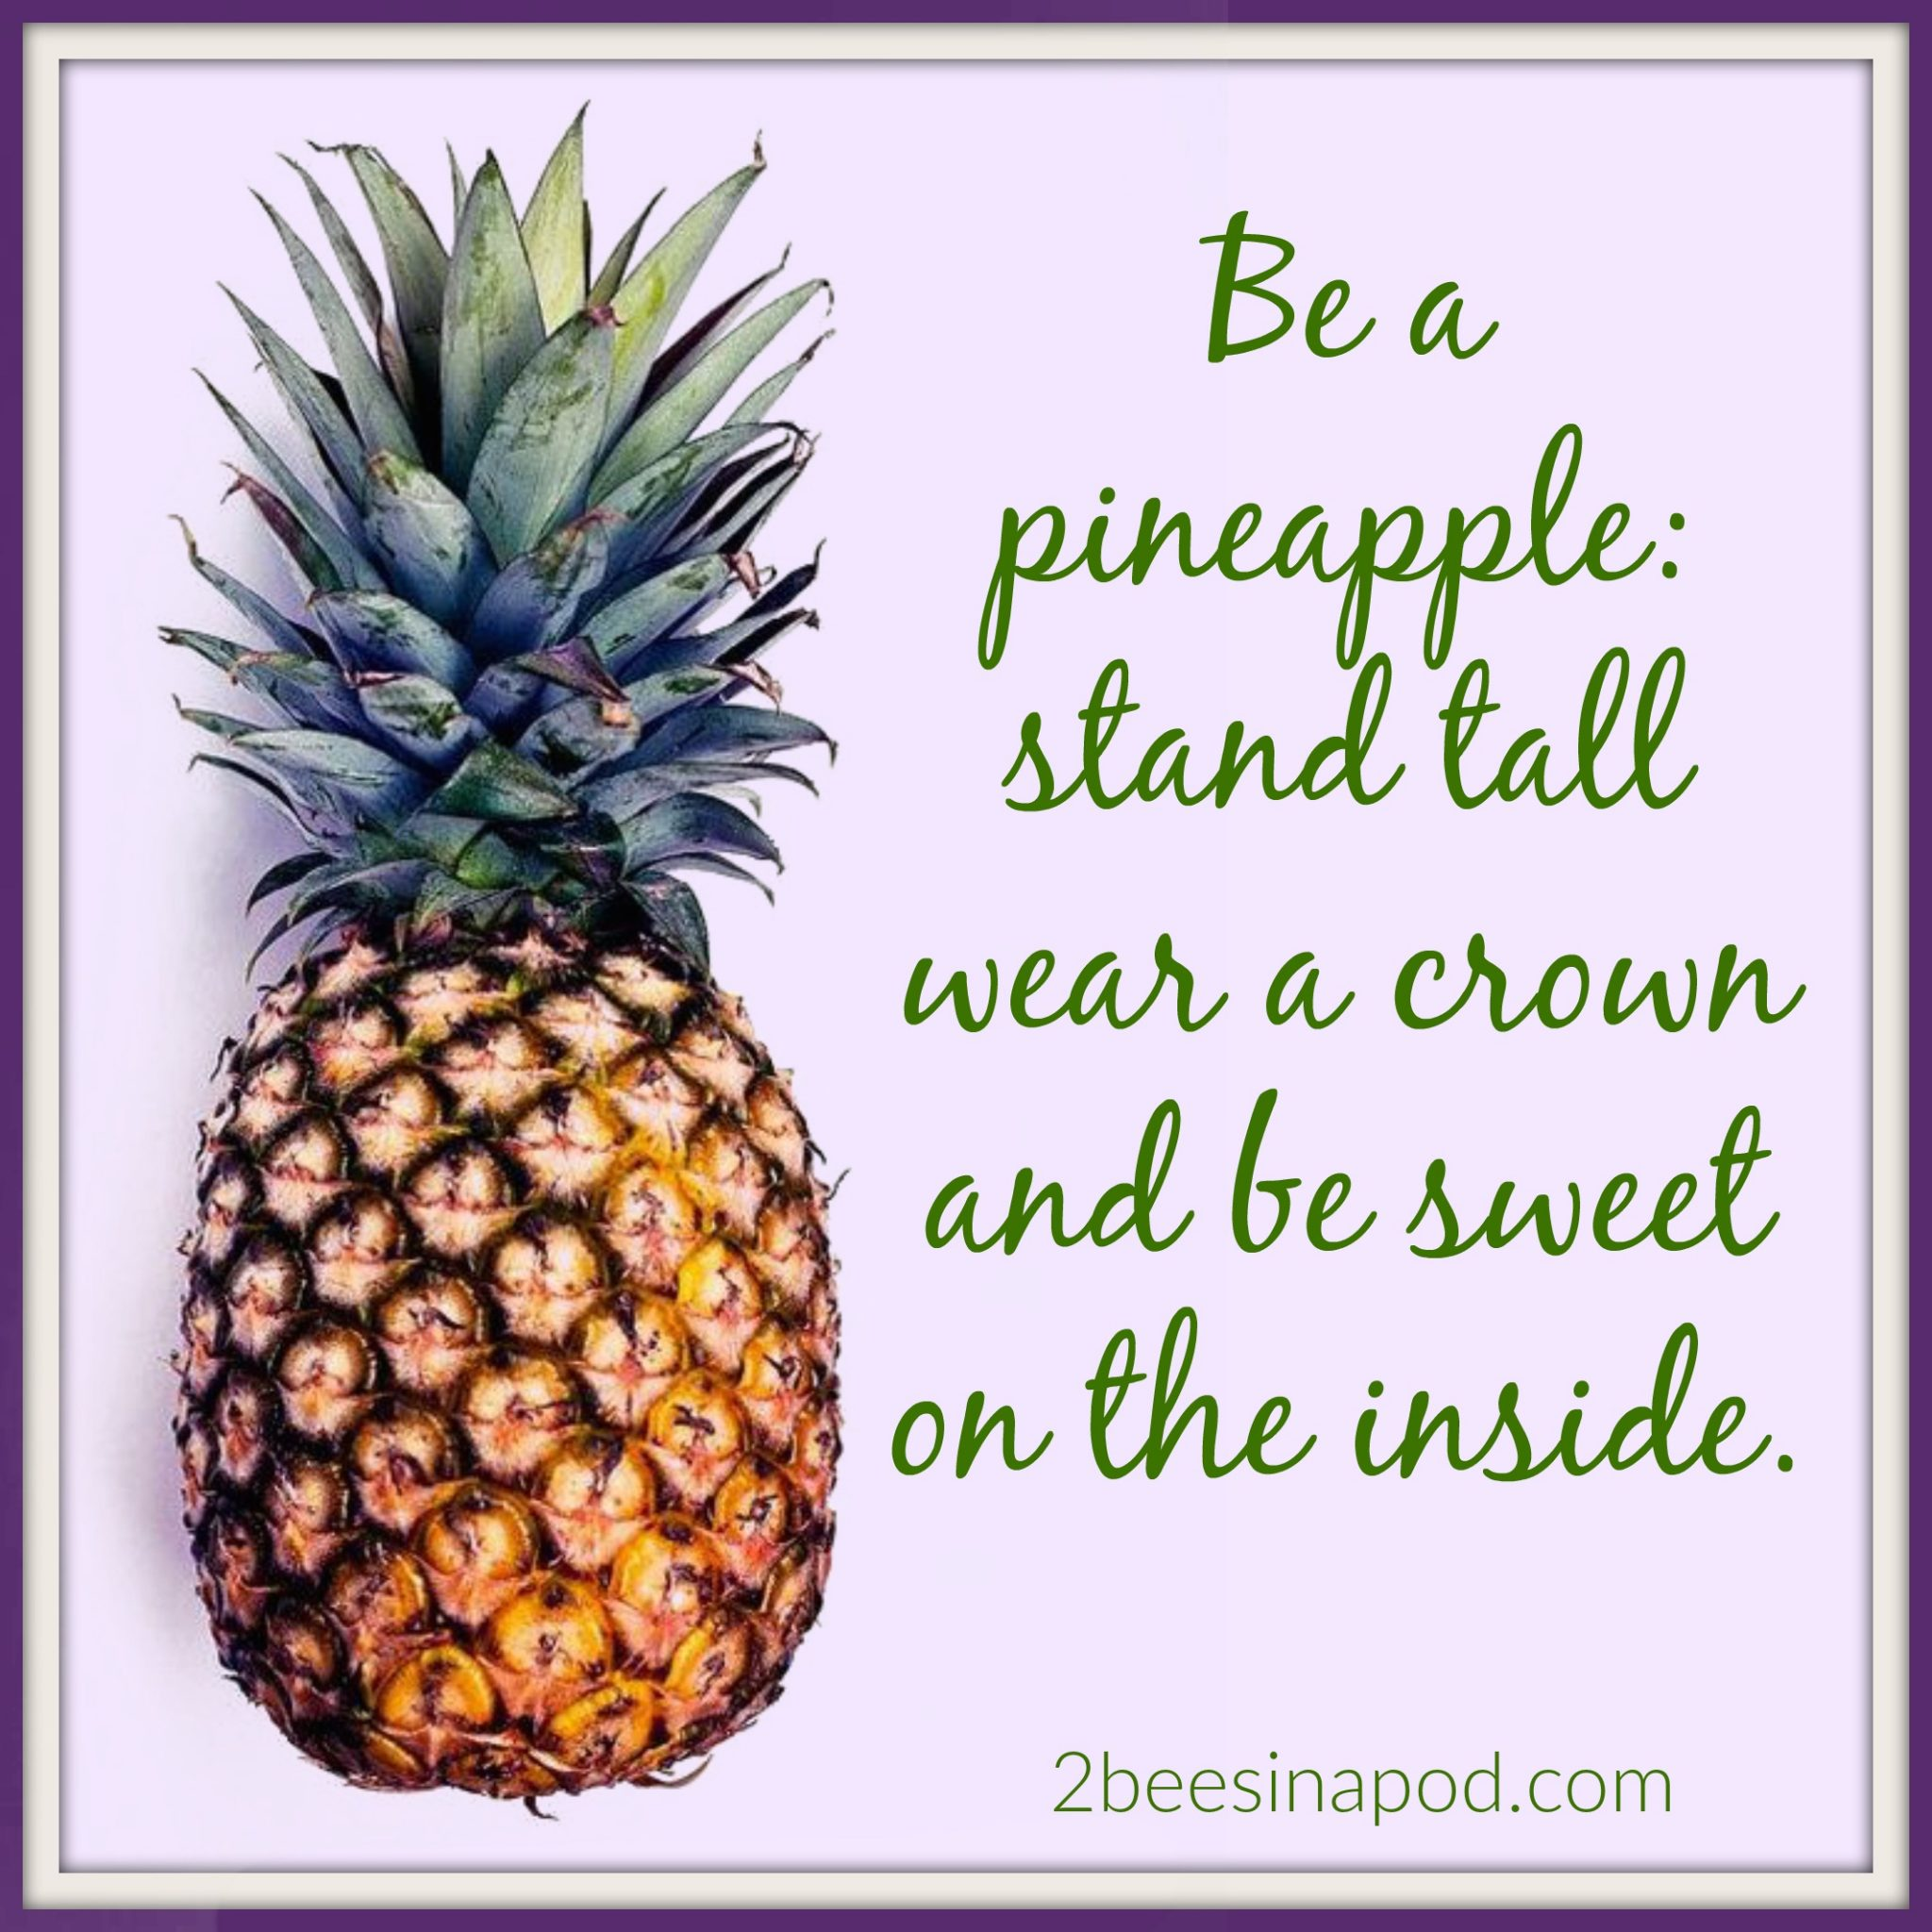 Be a pineapple, stand tall, wear a crown and be sweet on the inside. #quotes #freeprintable #wordsofwisdom #inspirationalquotes